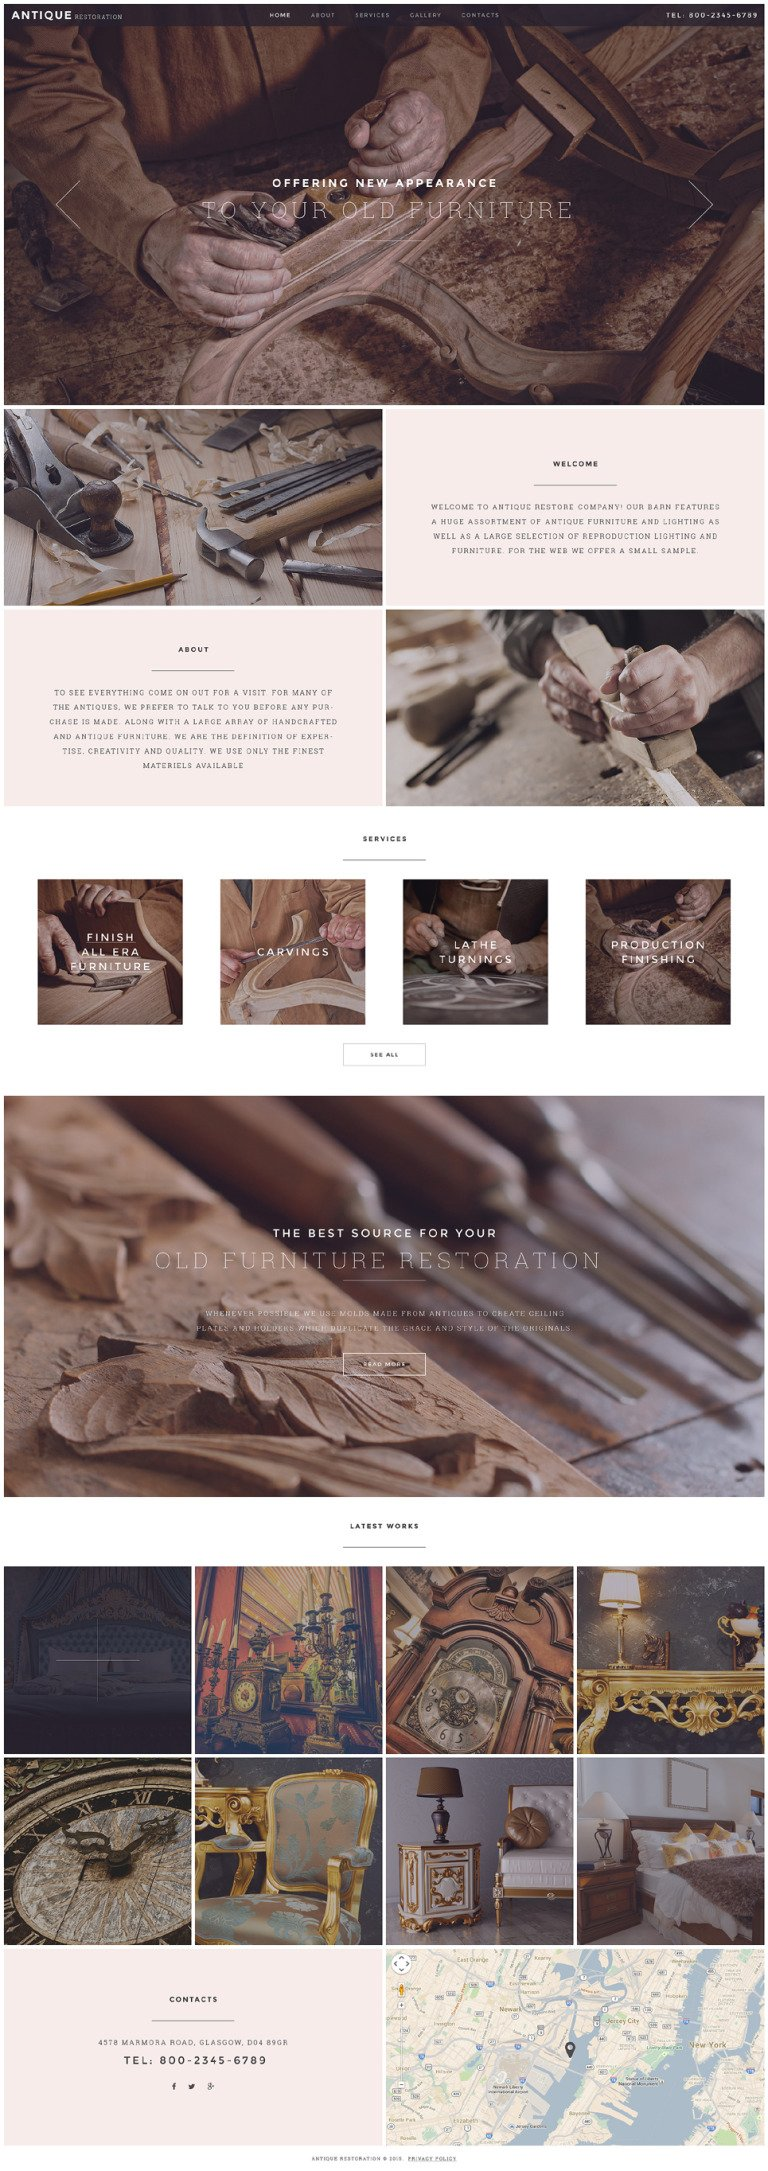 Antique Restoration Website Template New Screenshots BIG